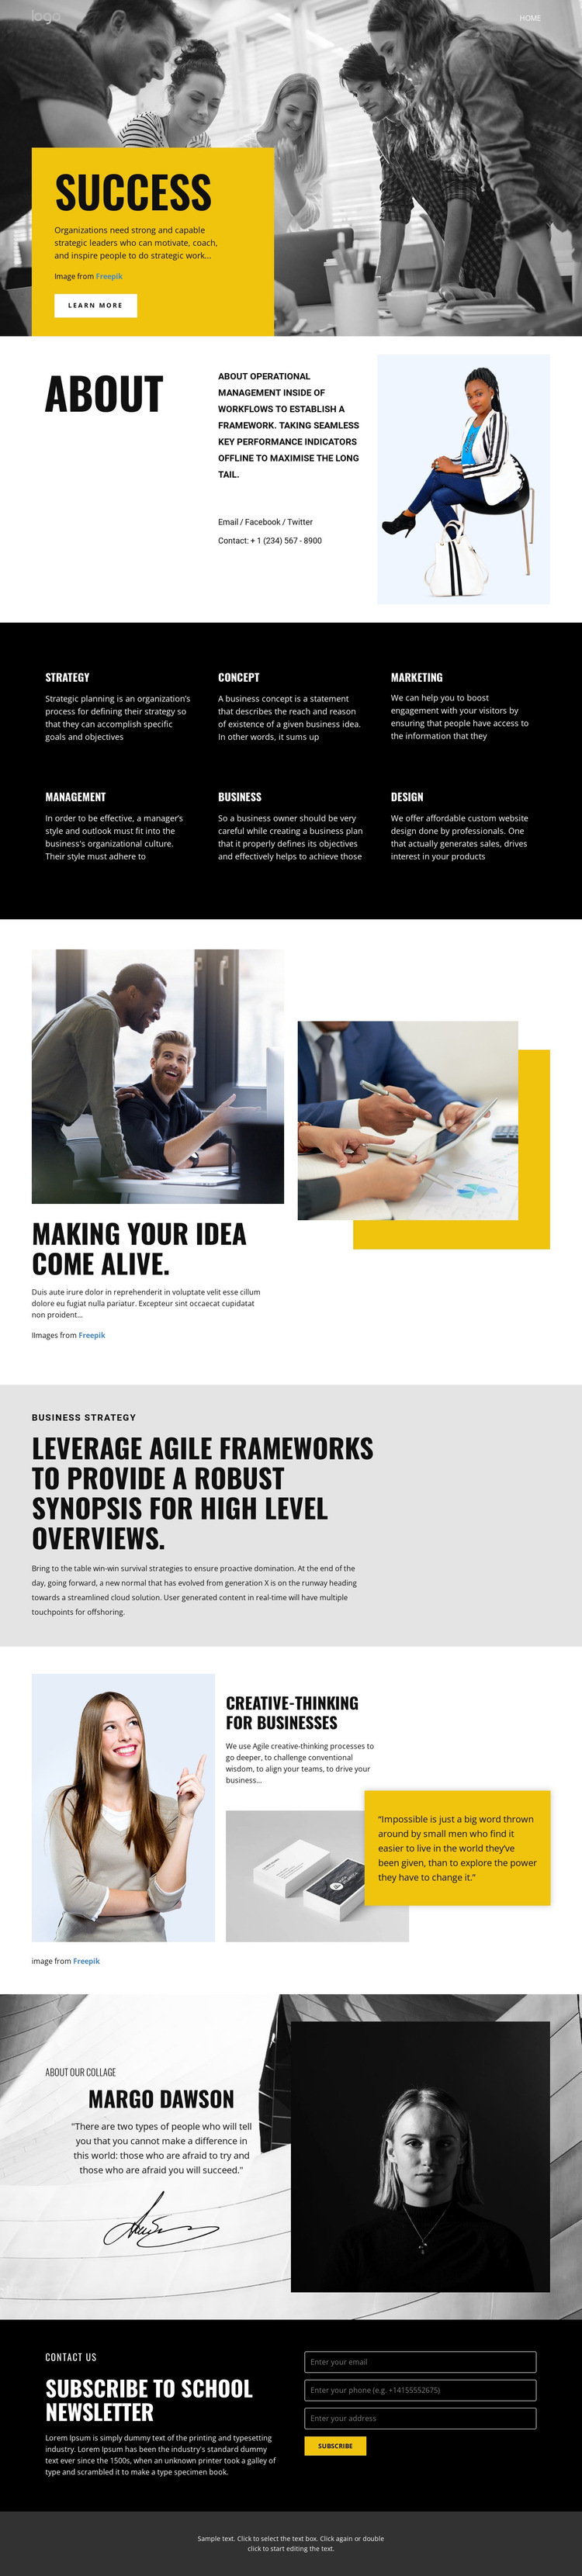 Capable people in businesses HTML5 Template